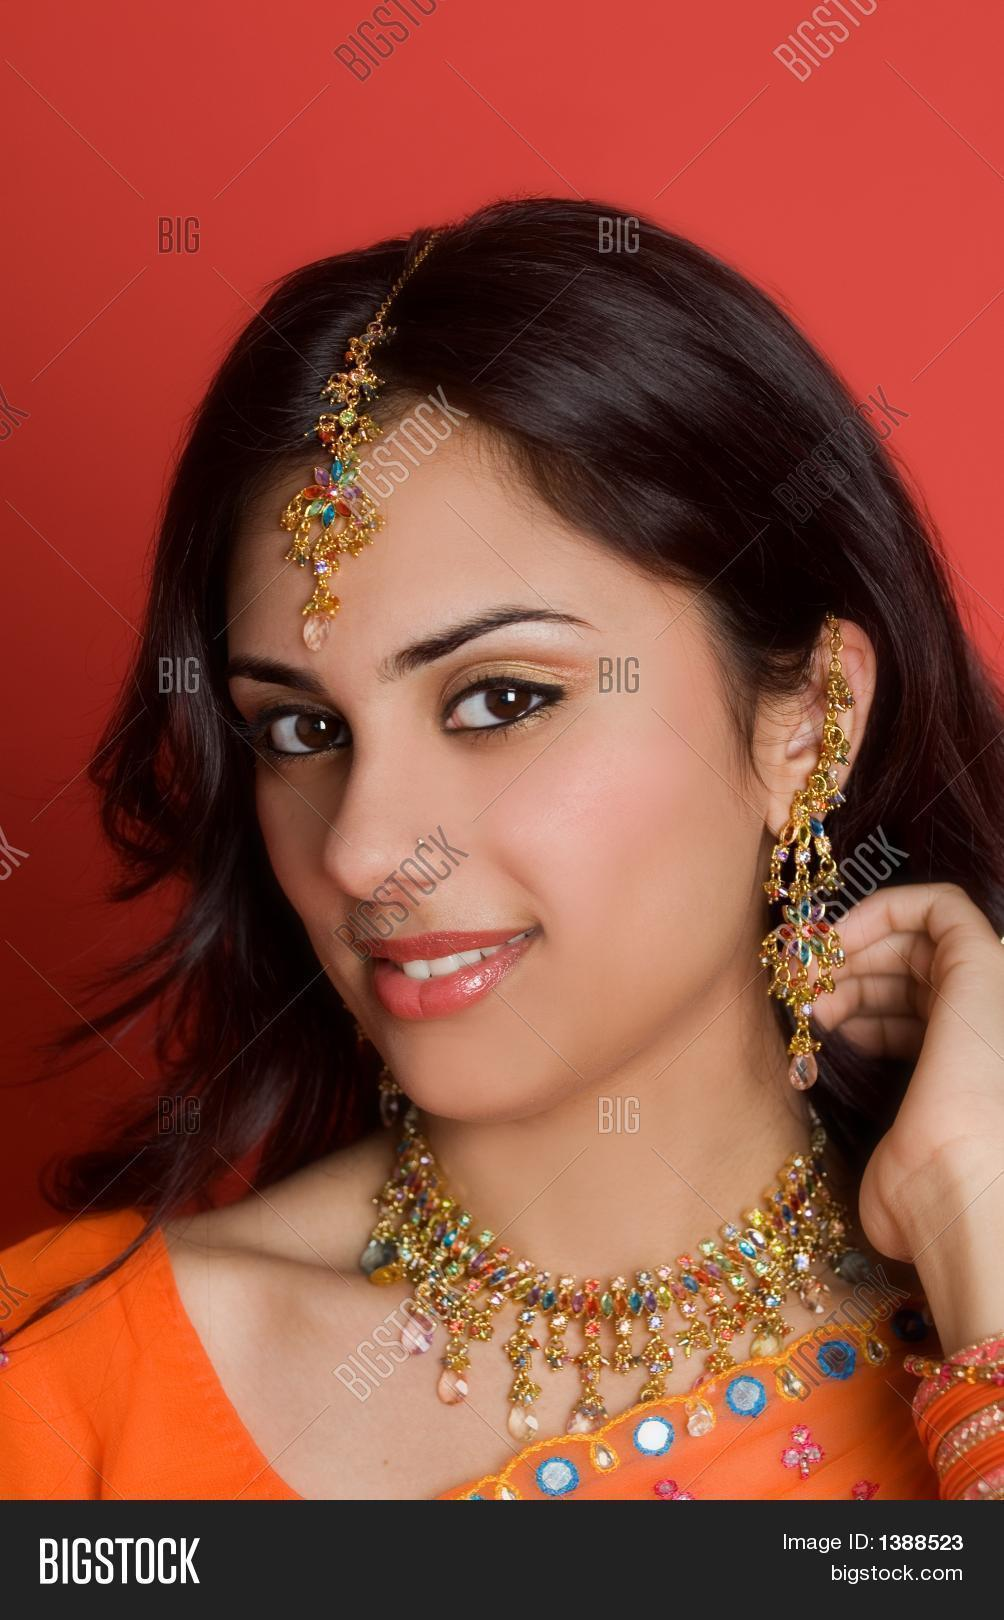 hindu single women in hopkinsville Looking for hopkinsville christian women look through the profile previews below to see your perfect date contact them and setup a go out tonight our site has 1000's of members who have always been looking to date somebody exactly like.